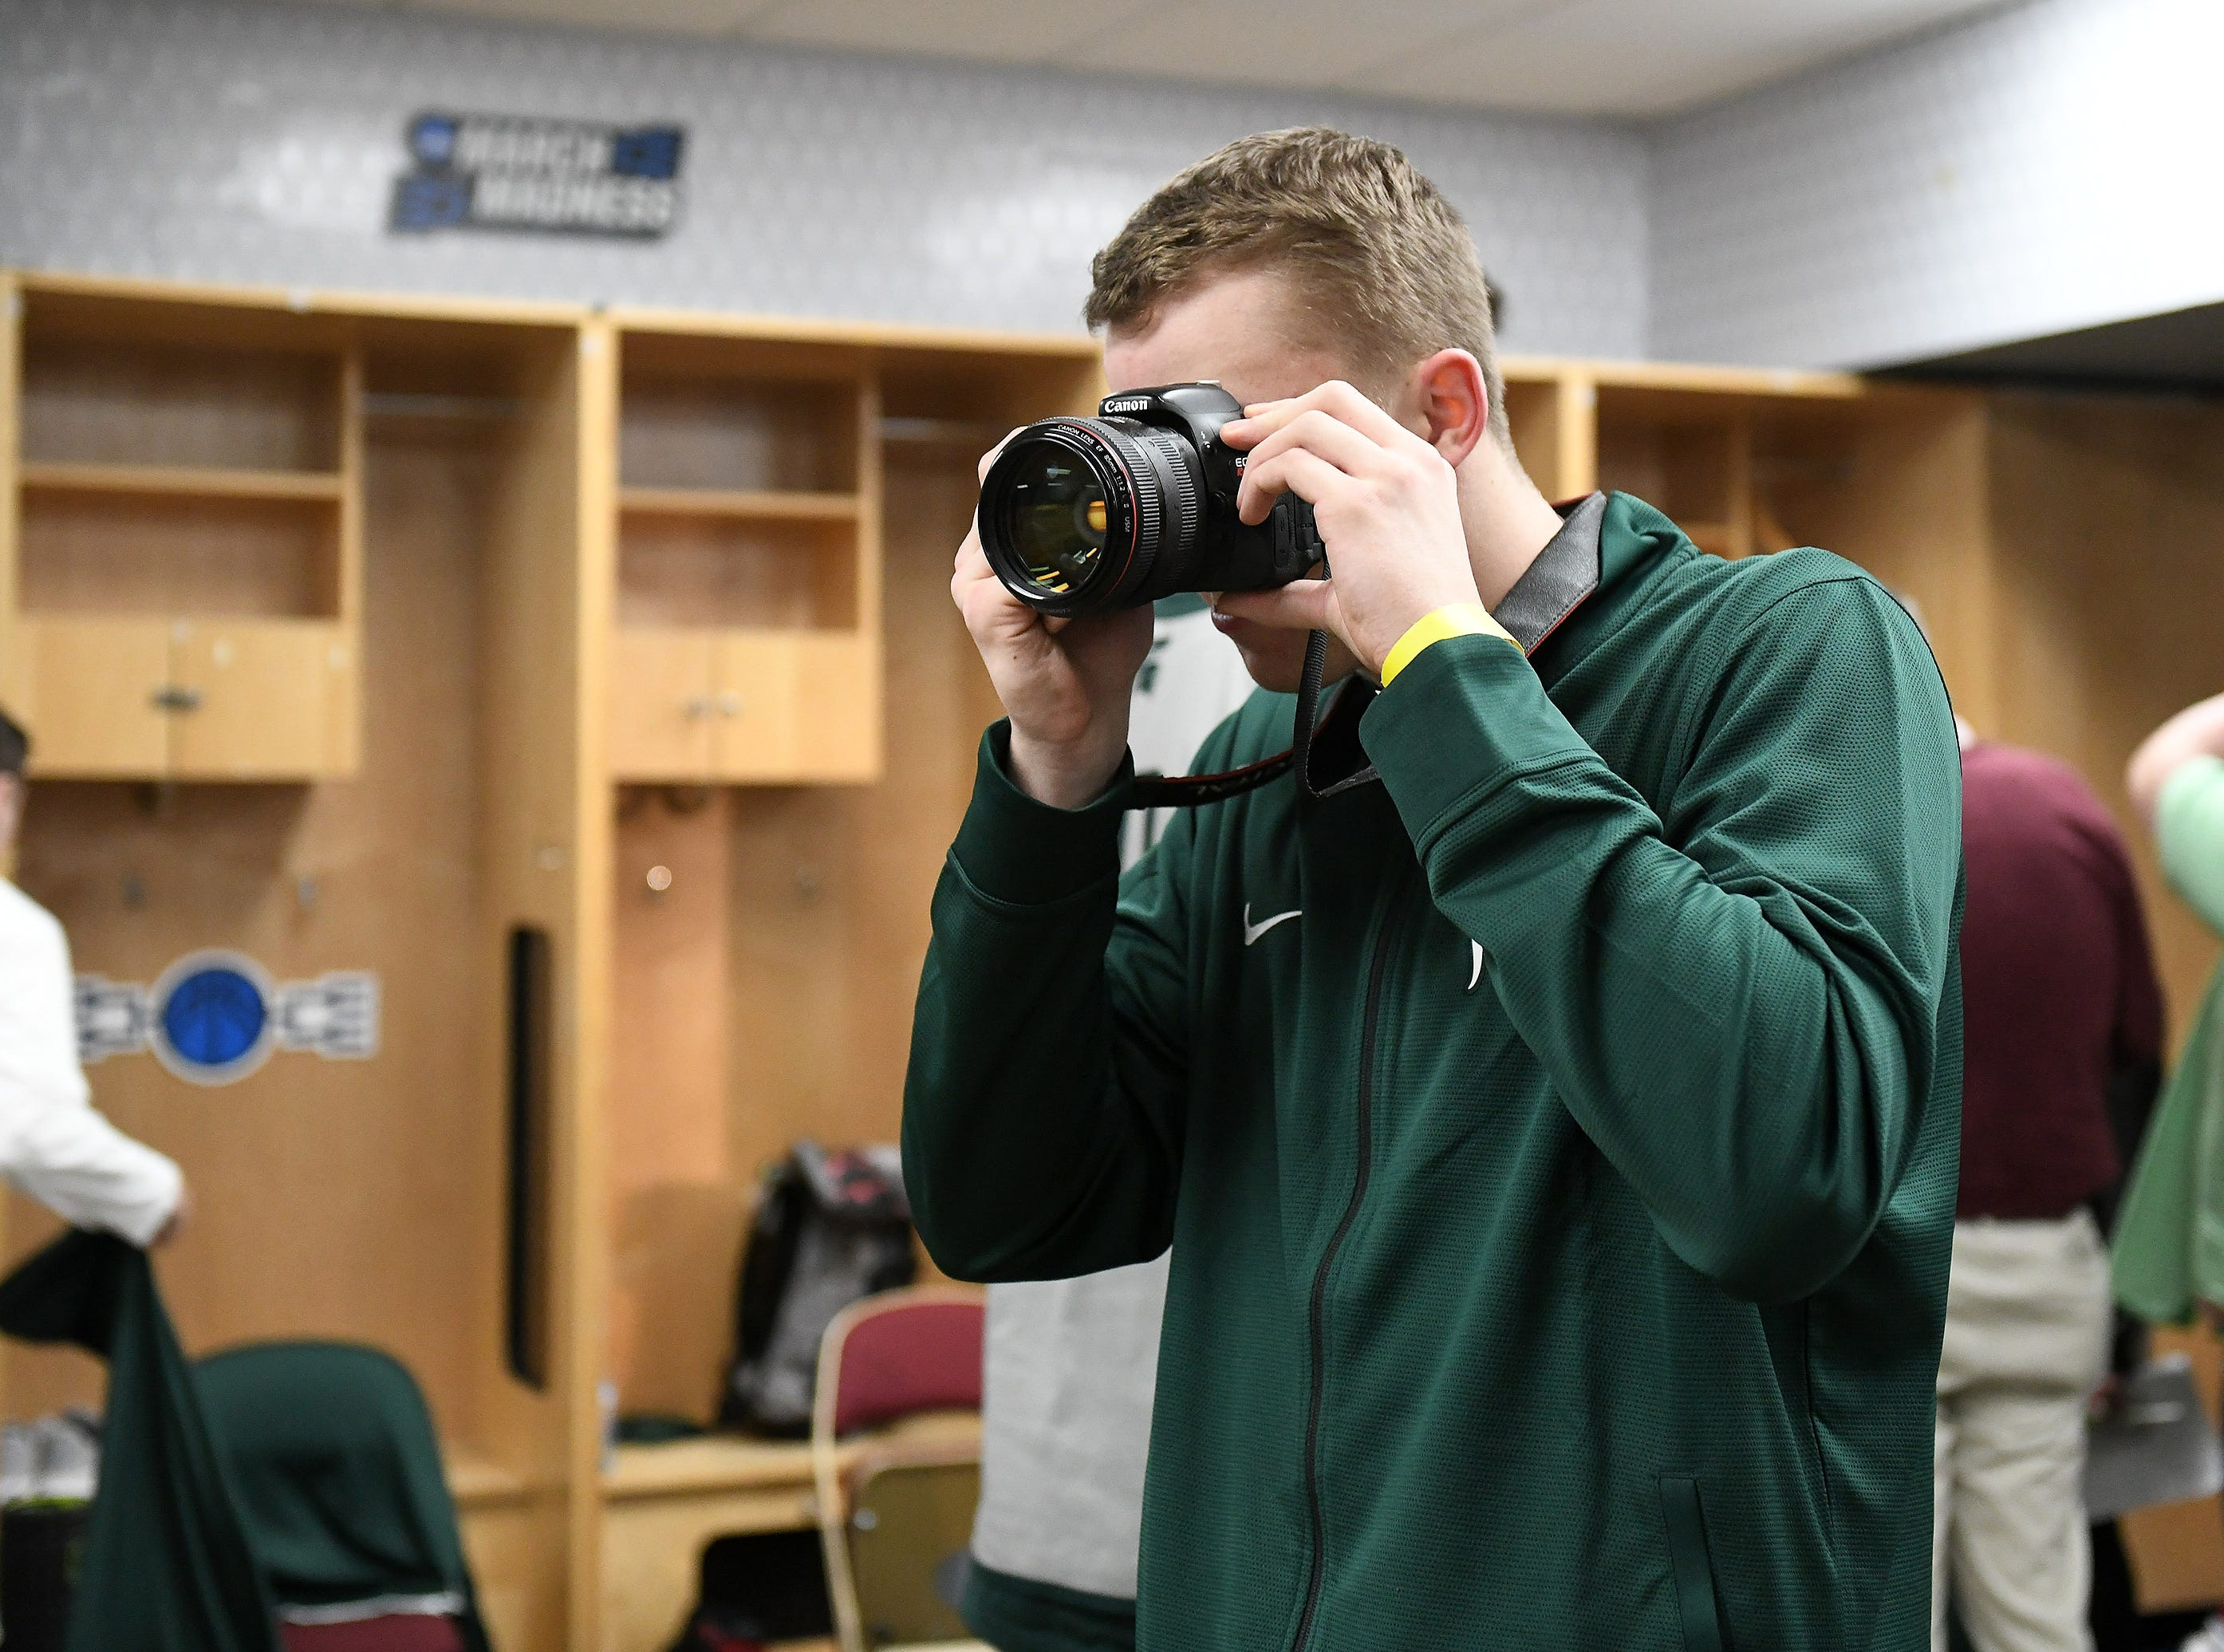 Michigan State forward Thomas Kithier takes photos with the team's social media photographer's camera during open locker room media availability Wednesday.